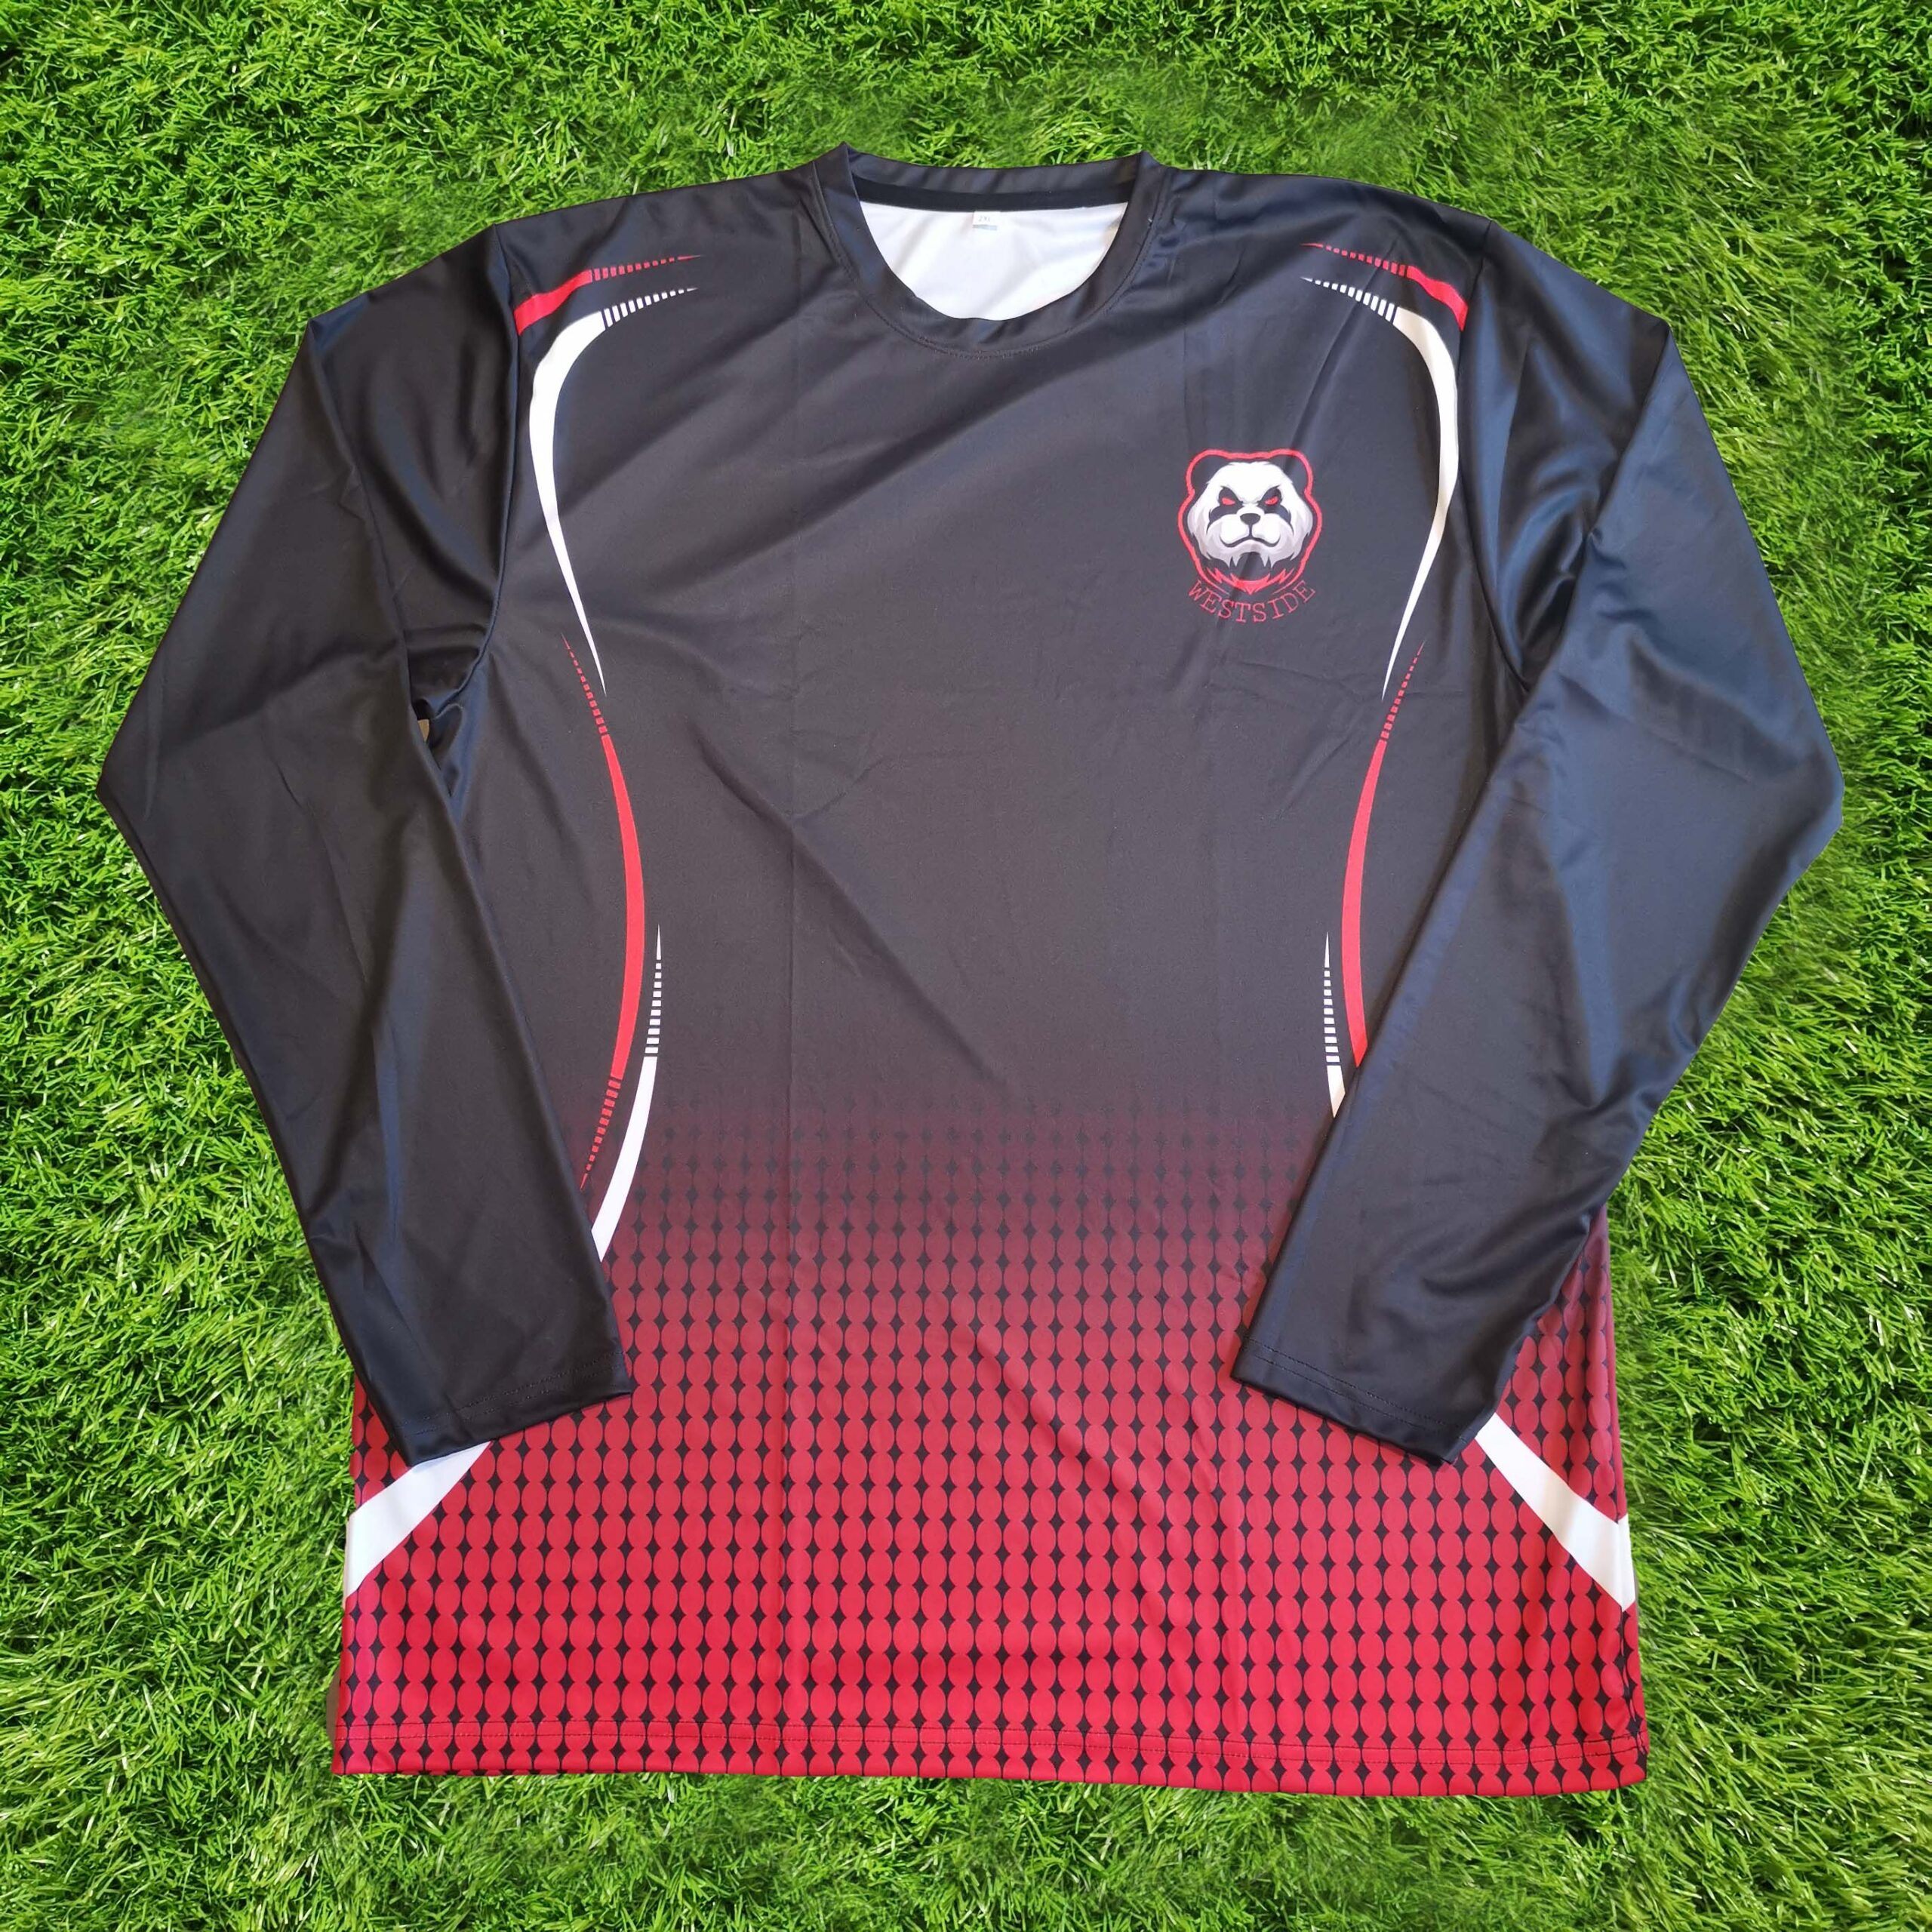 Sublimation Printing in Long Sleeve